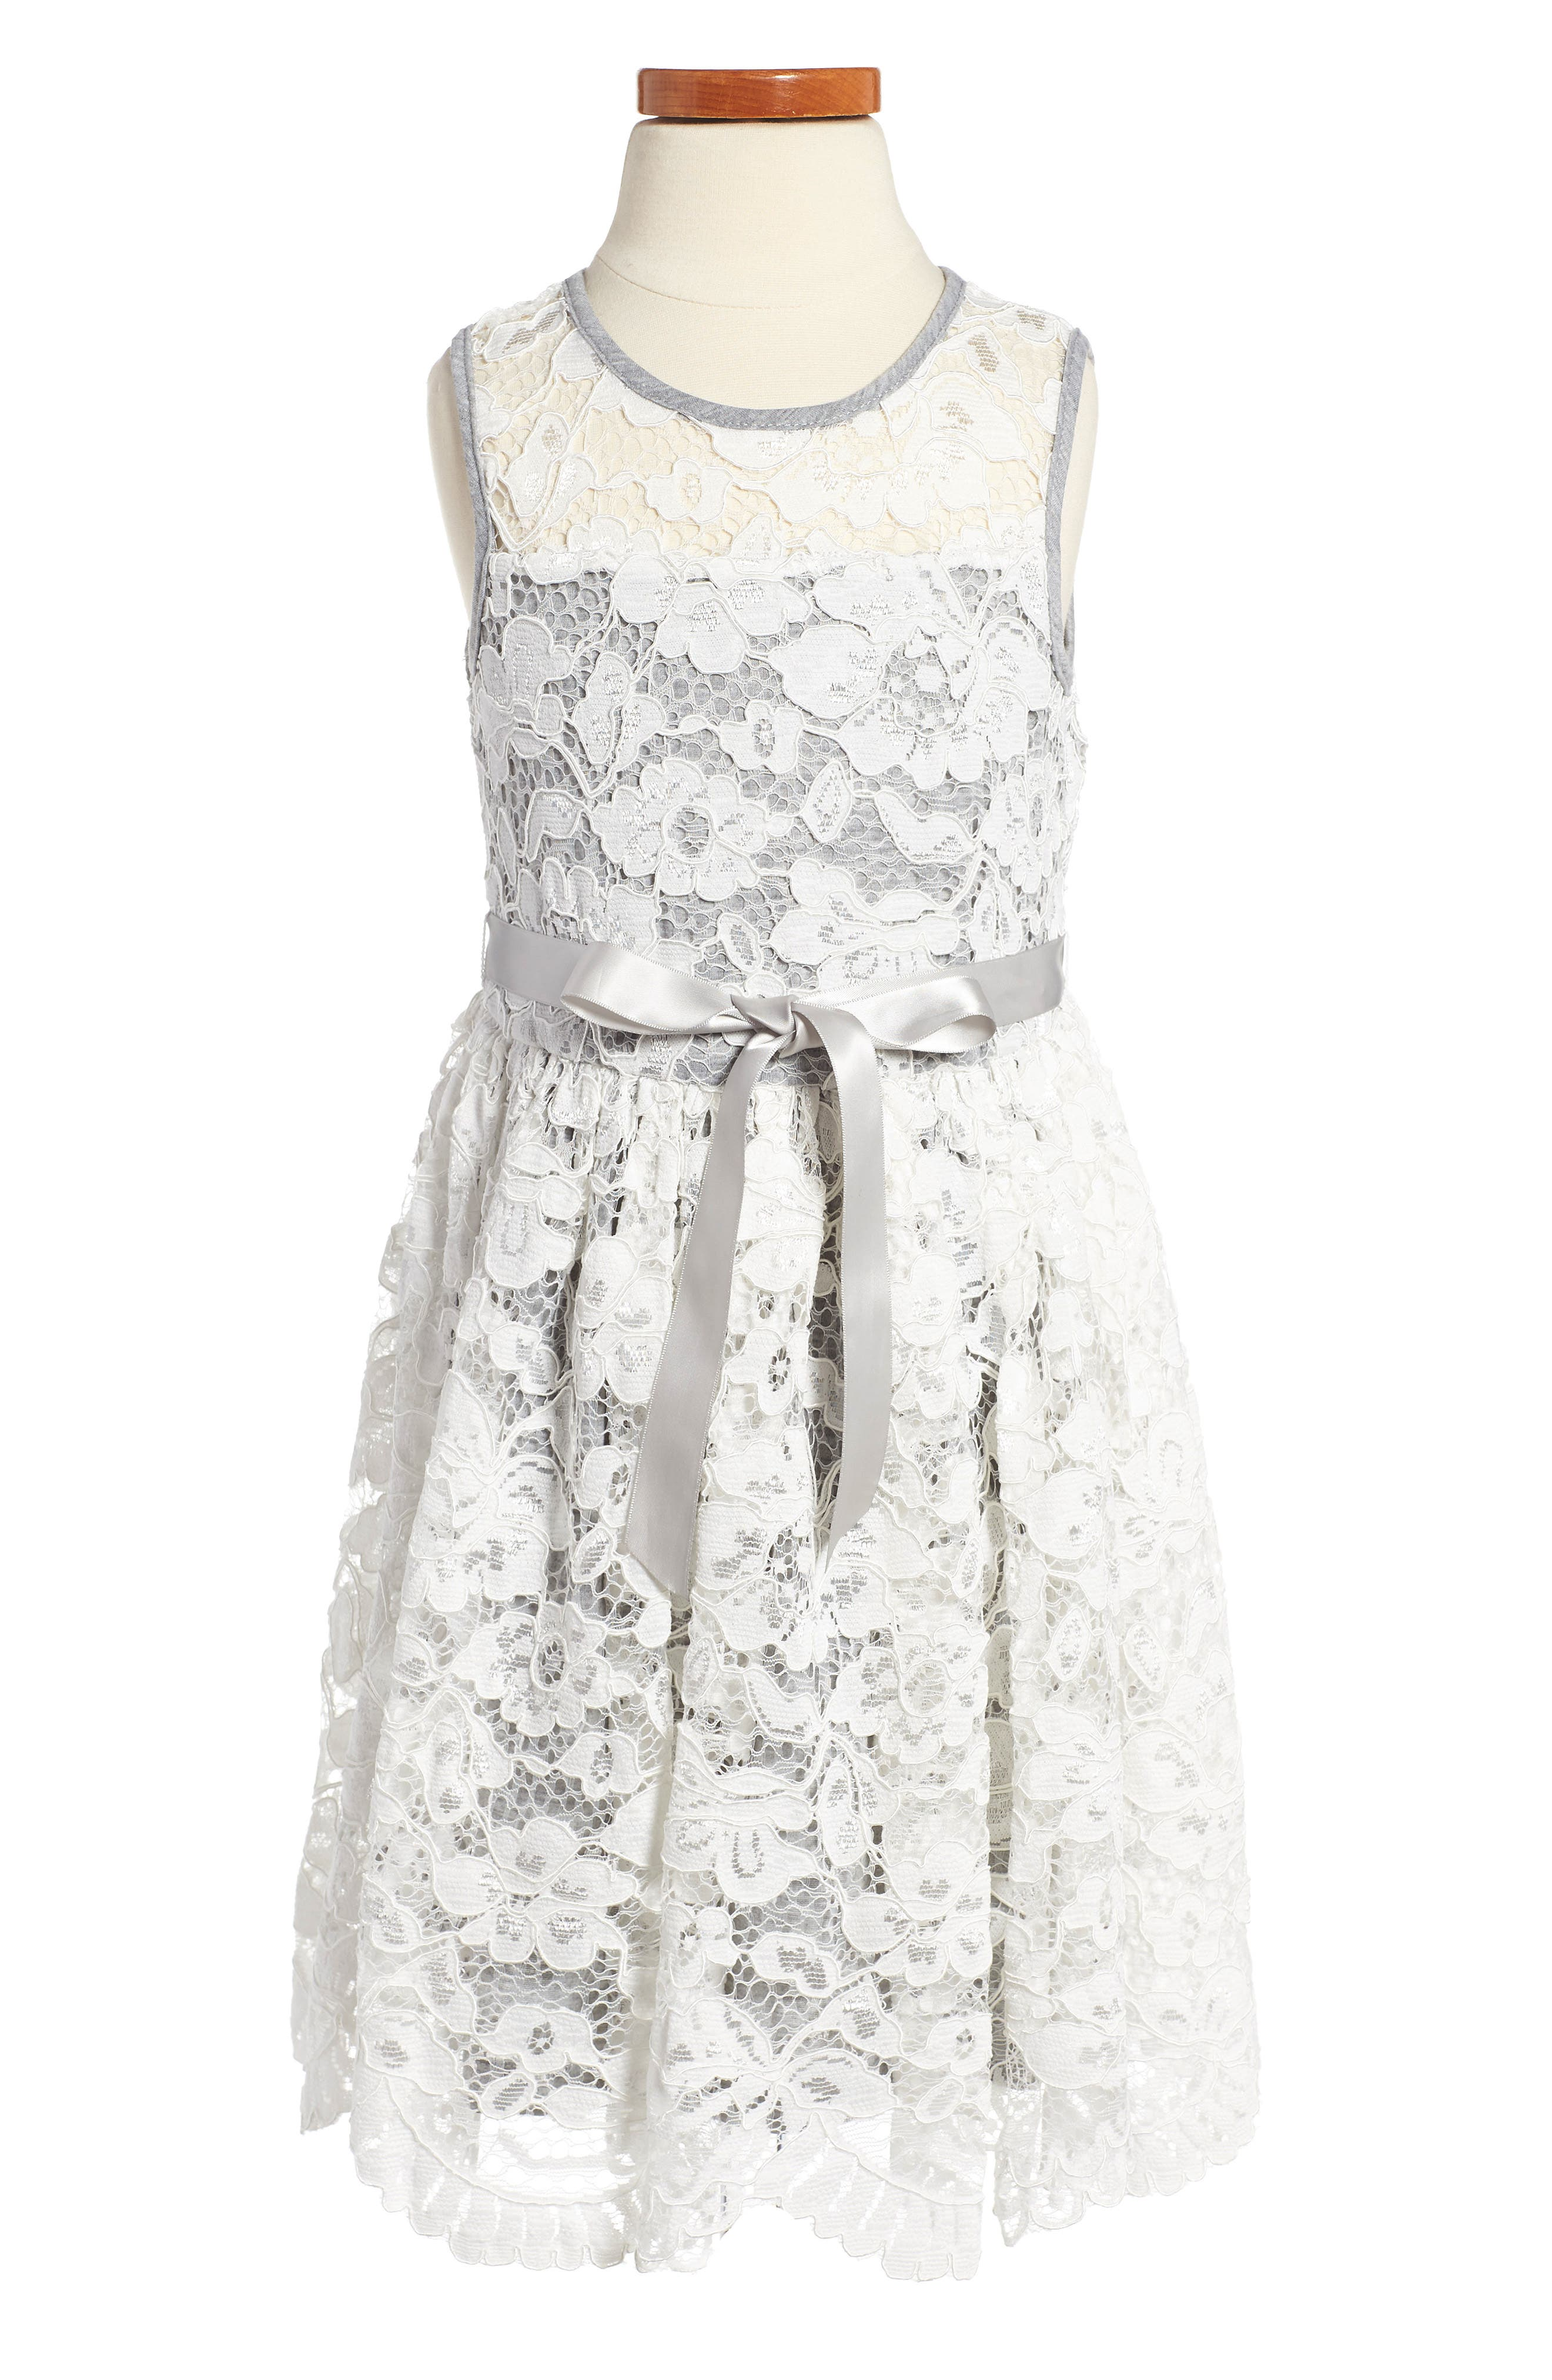 Scalloped Floral Lace Dress,                             Main thumbnail 1, color,                             Ivory/ Grey